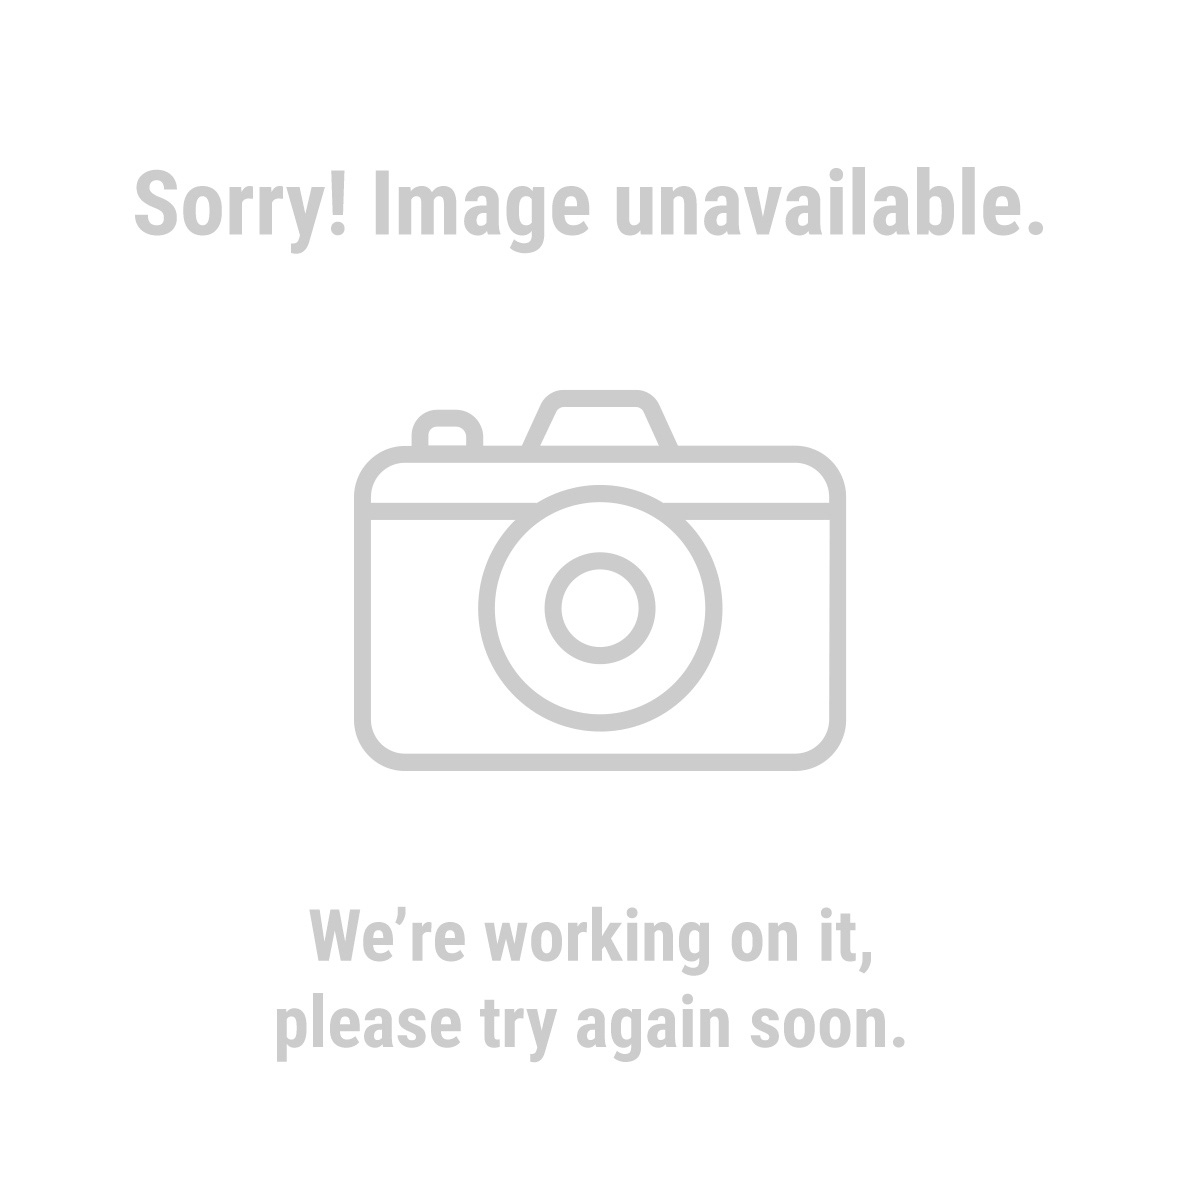 car hoist wiring diagram manual pallet jacks diagram